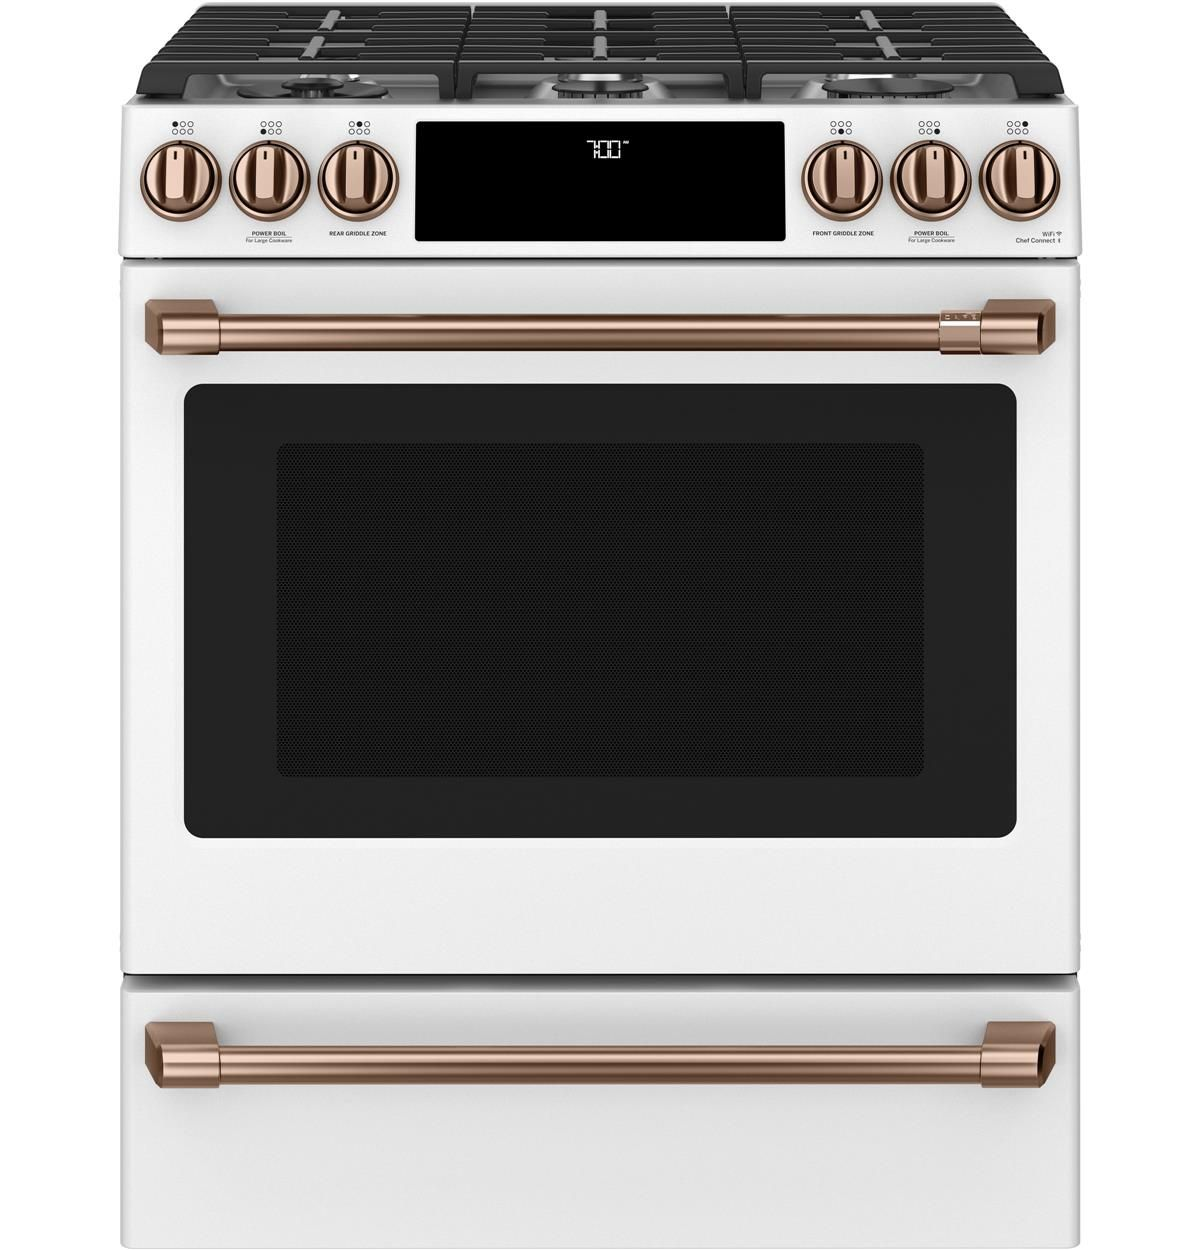 Cgs700p4mw2 Overview Cafe 30 Slide In Front Control Gas Oven With Convection Range Cafe Appliances Convection Range Electric Range Induction Range